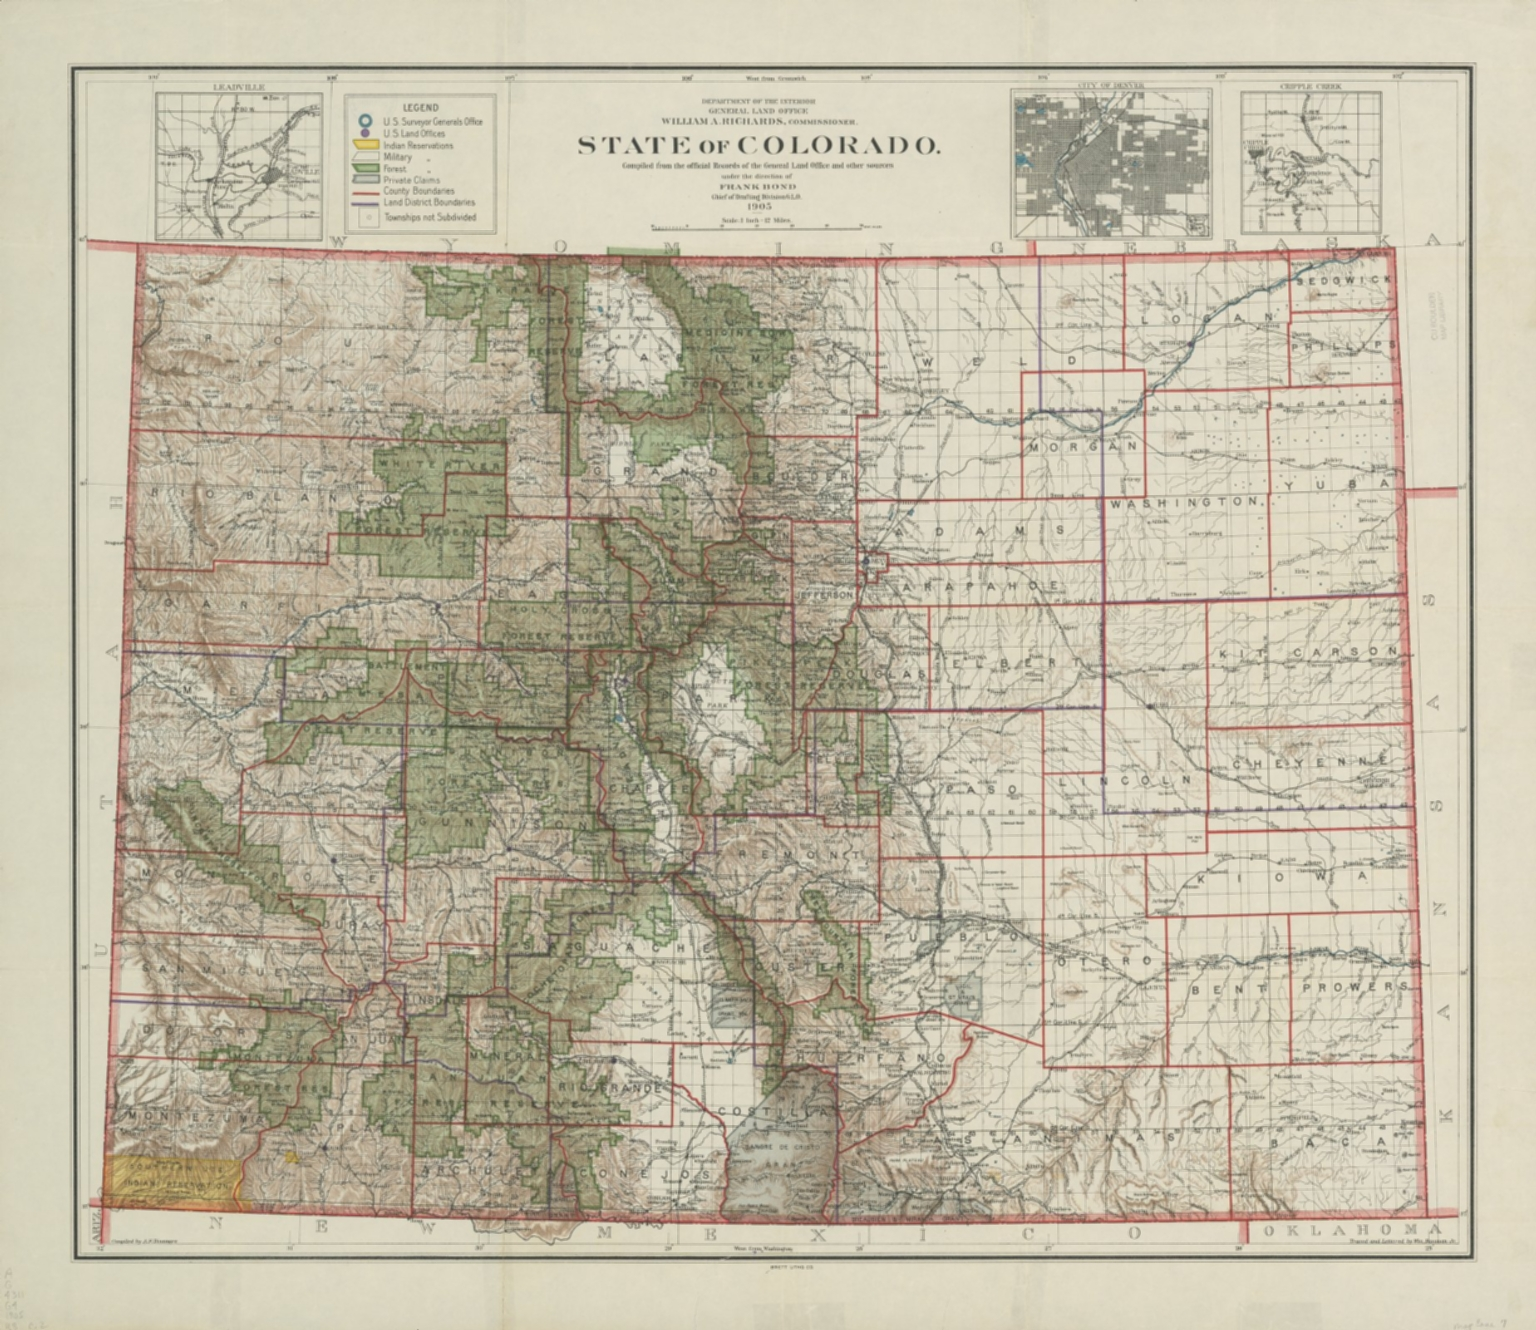 State of Colorado, compiled from the official records of the General Land Office and other sources under the direction of Frank Bond